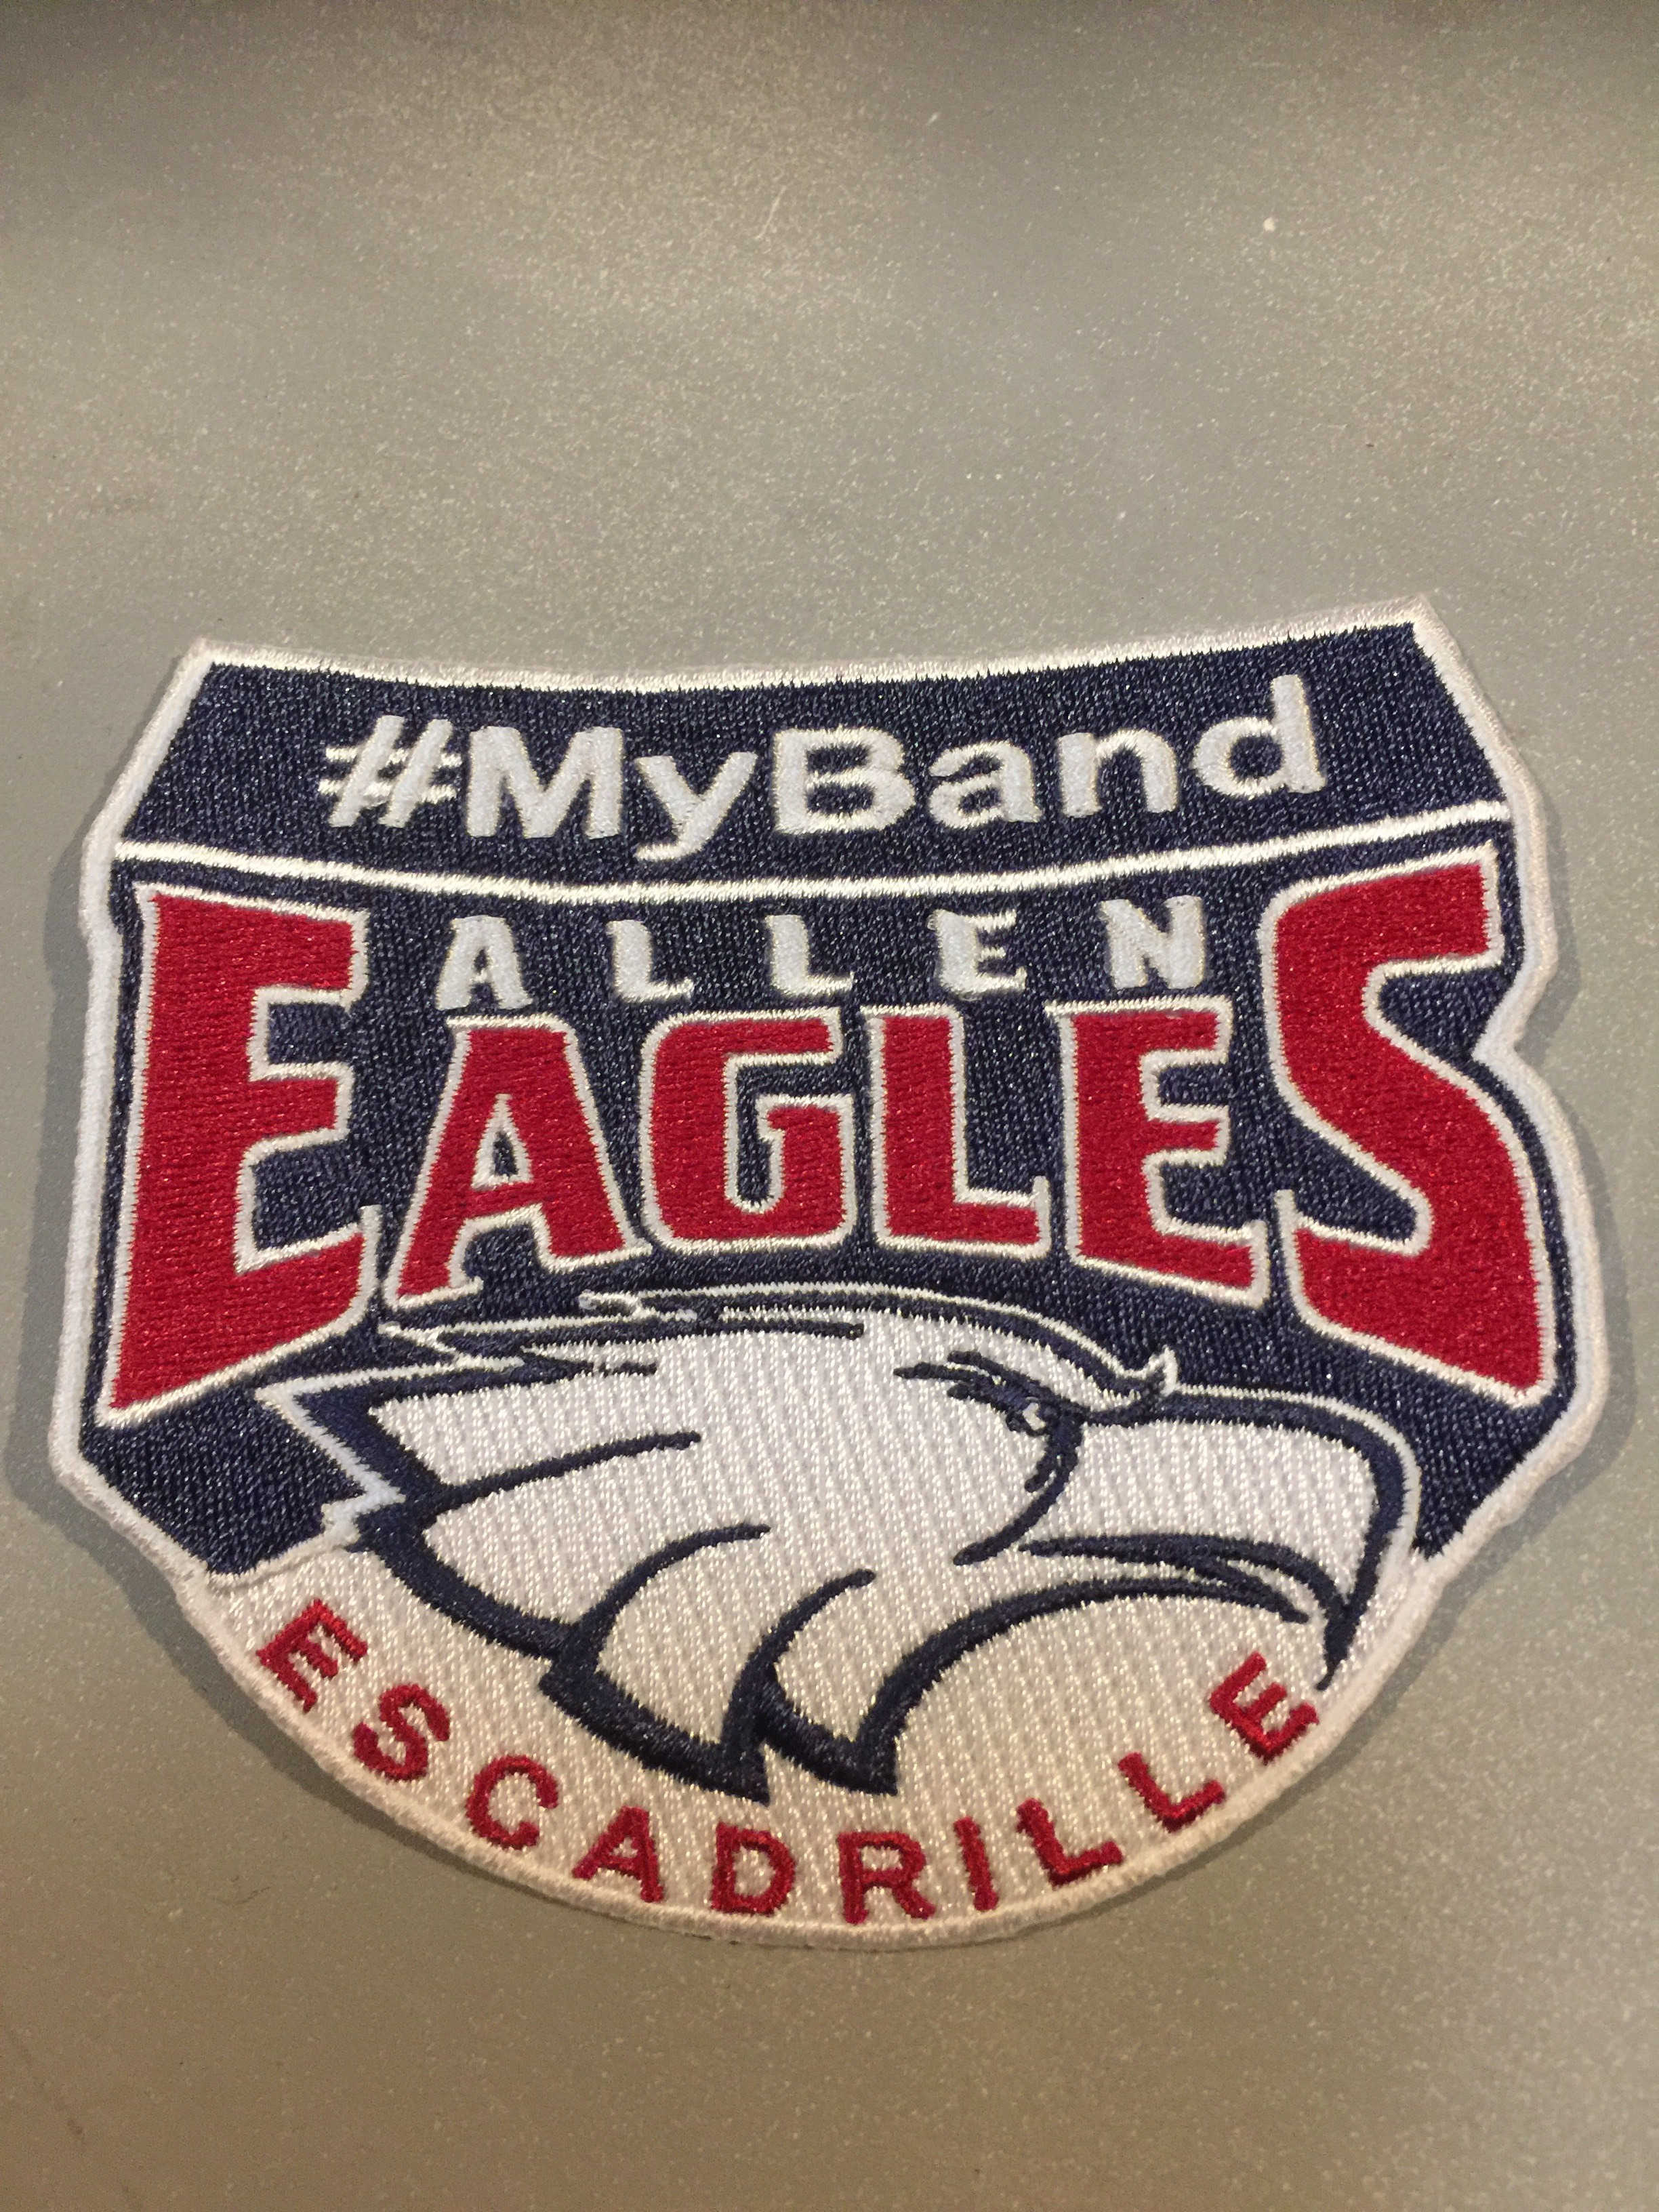 #myband patch